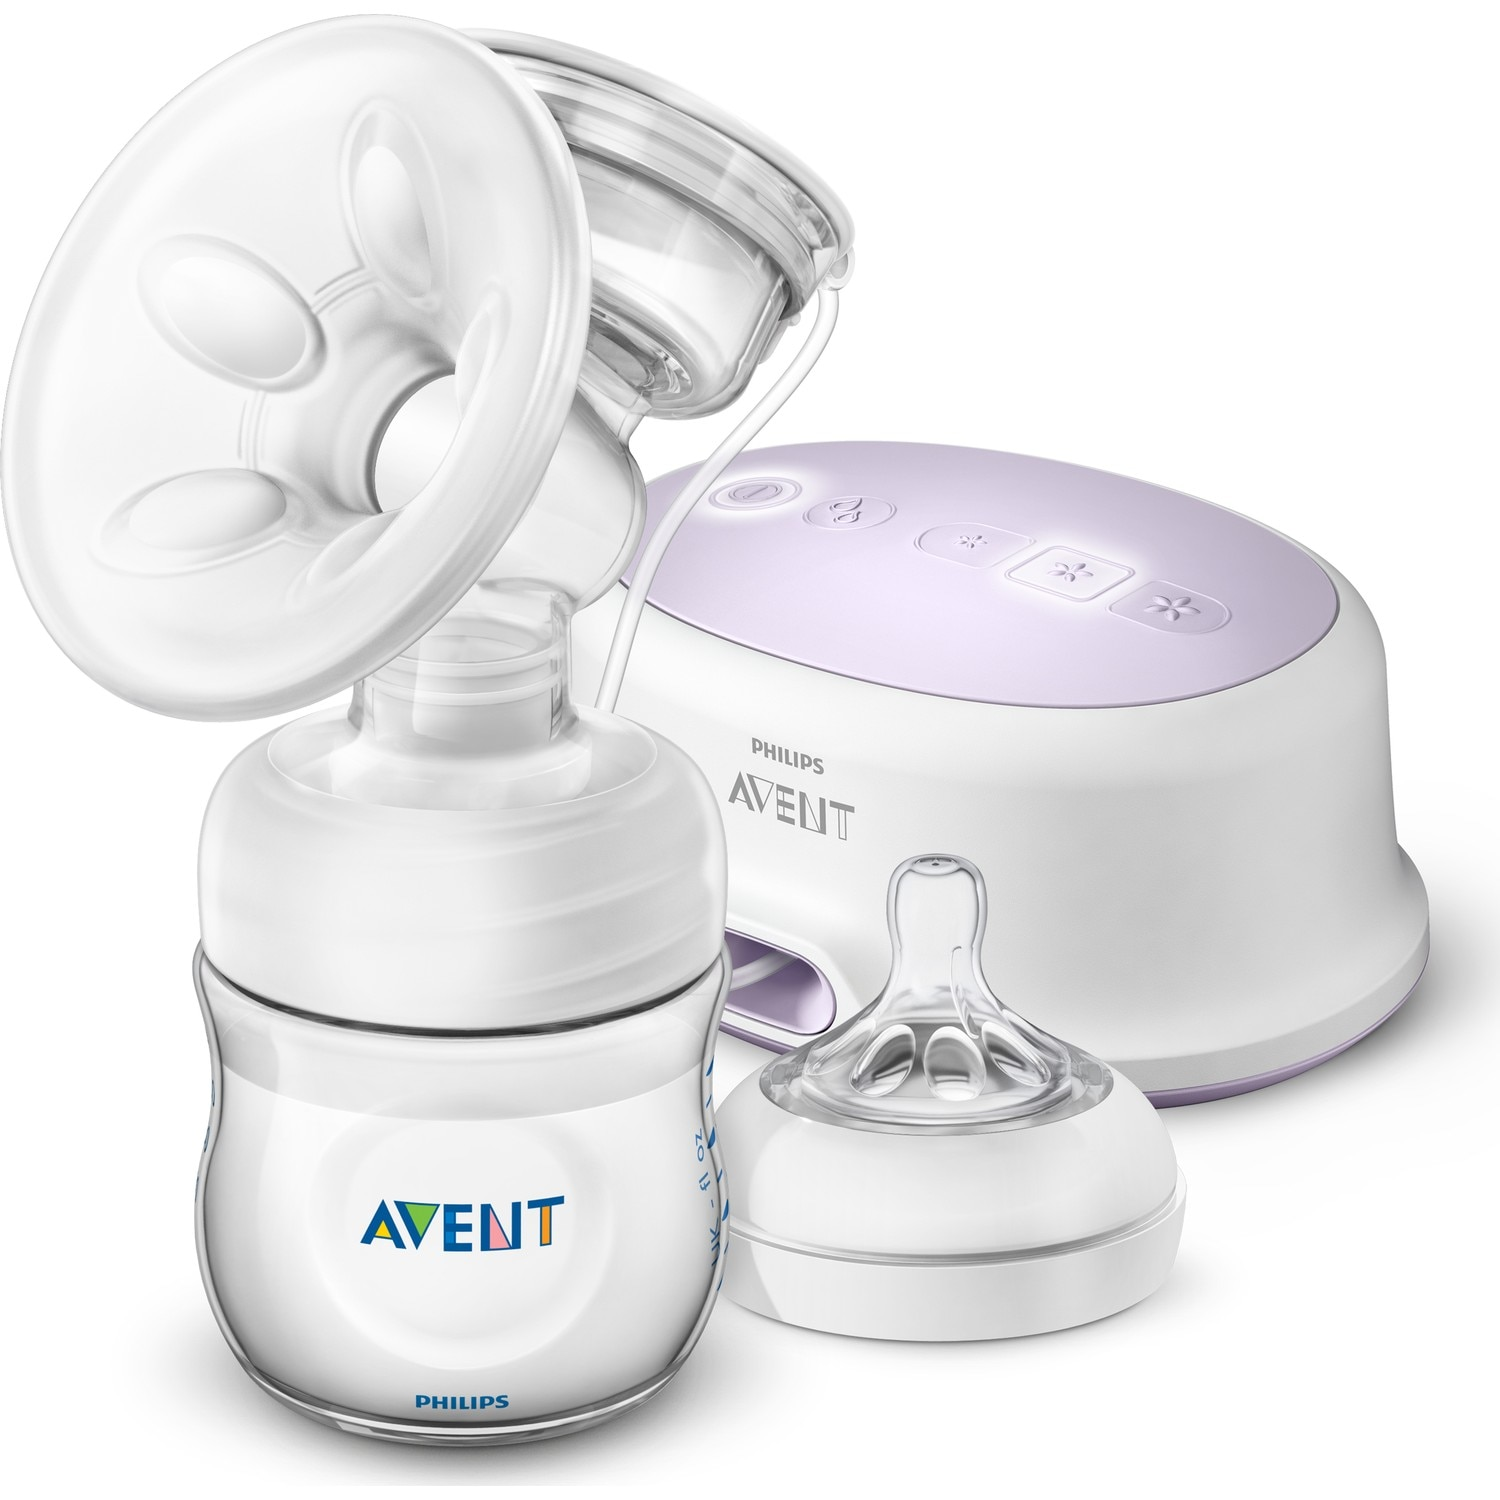 Avent Electric Breast Pump Unilateral and Bilateral Breast Pump Manual Silicone Breast Pump Baby Breastfeeding Accessories